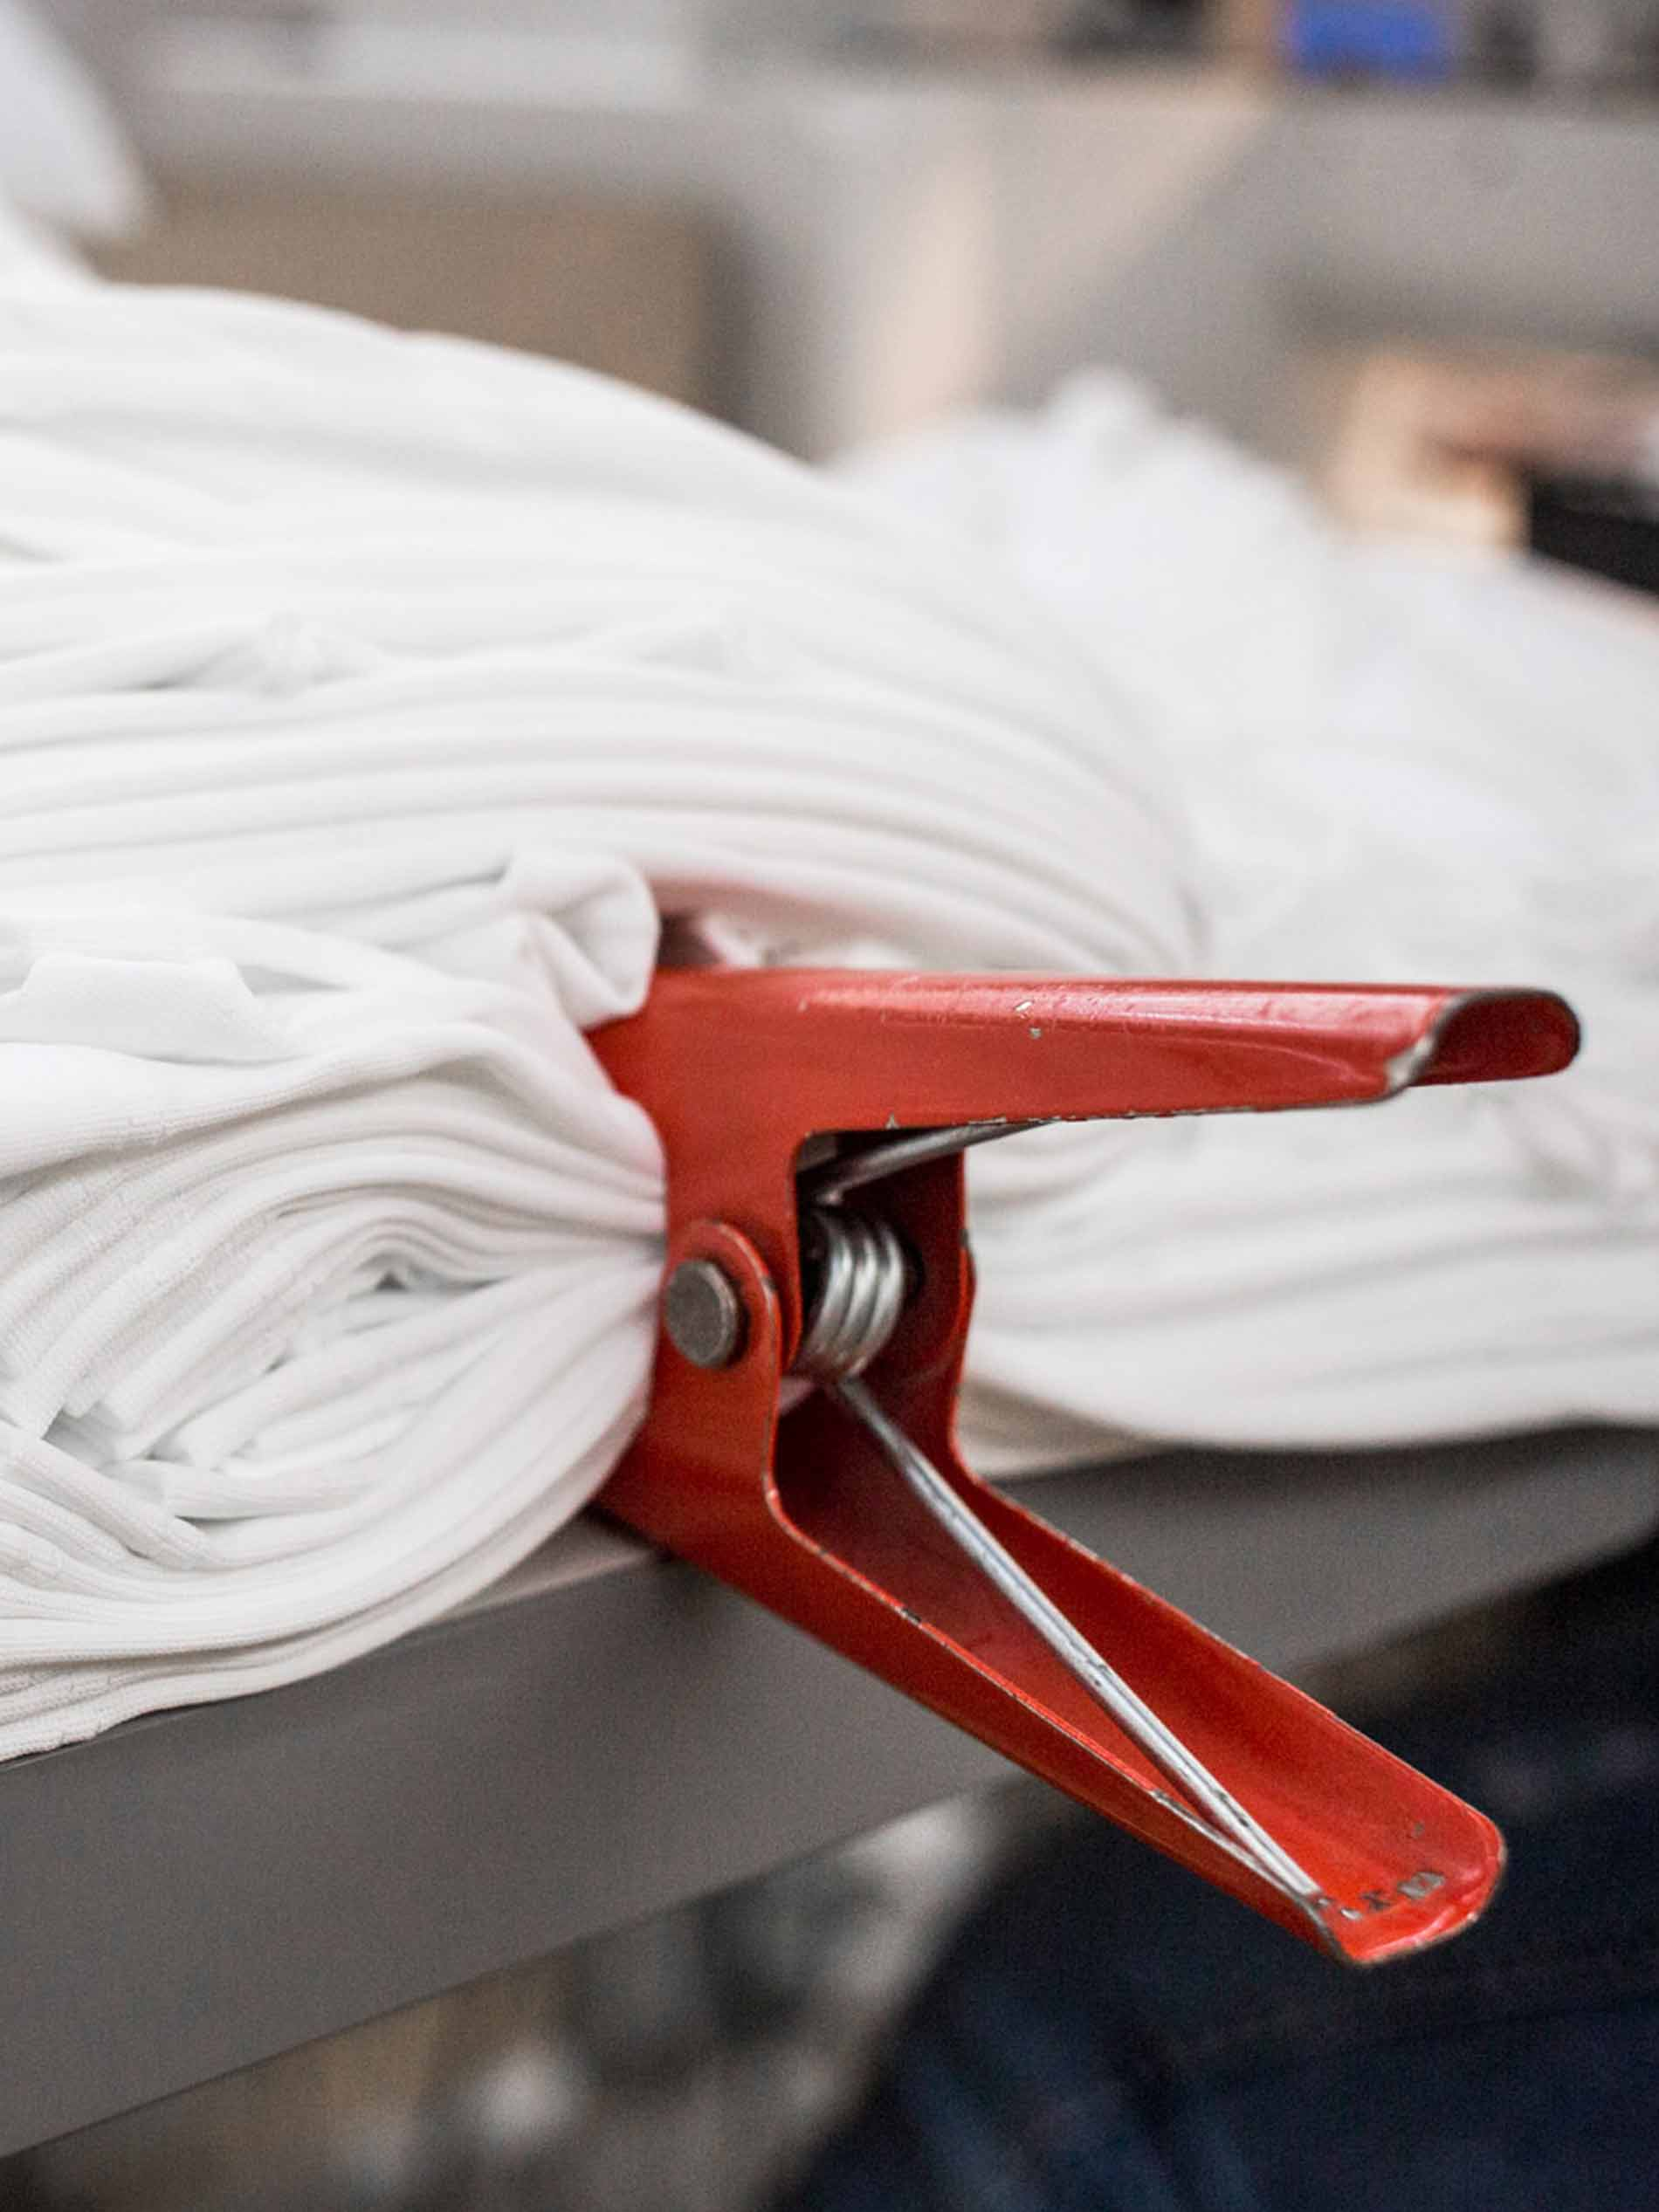 White fabric, folded into multiple layers and fixed in place with a red clip, preparation for the calendering process   mey®